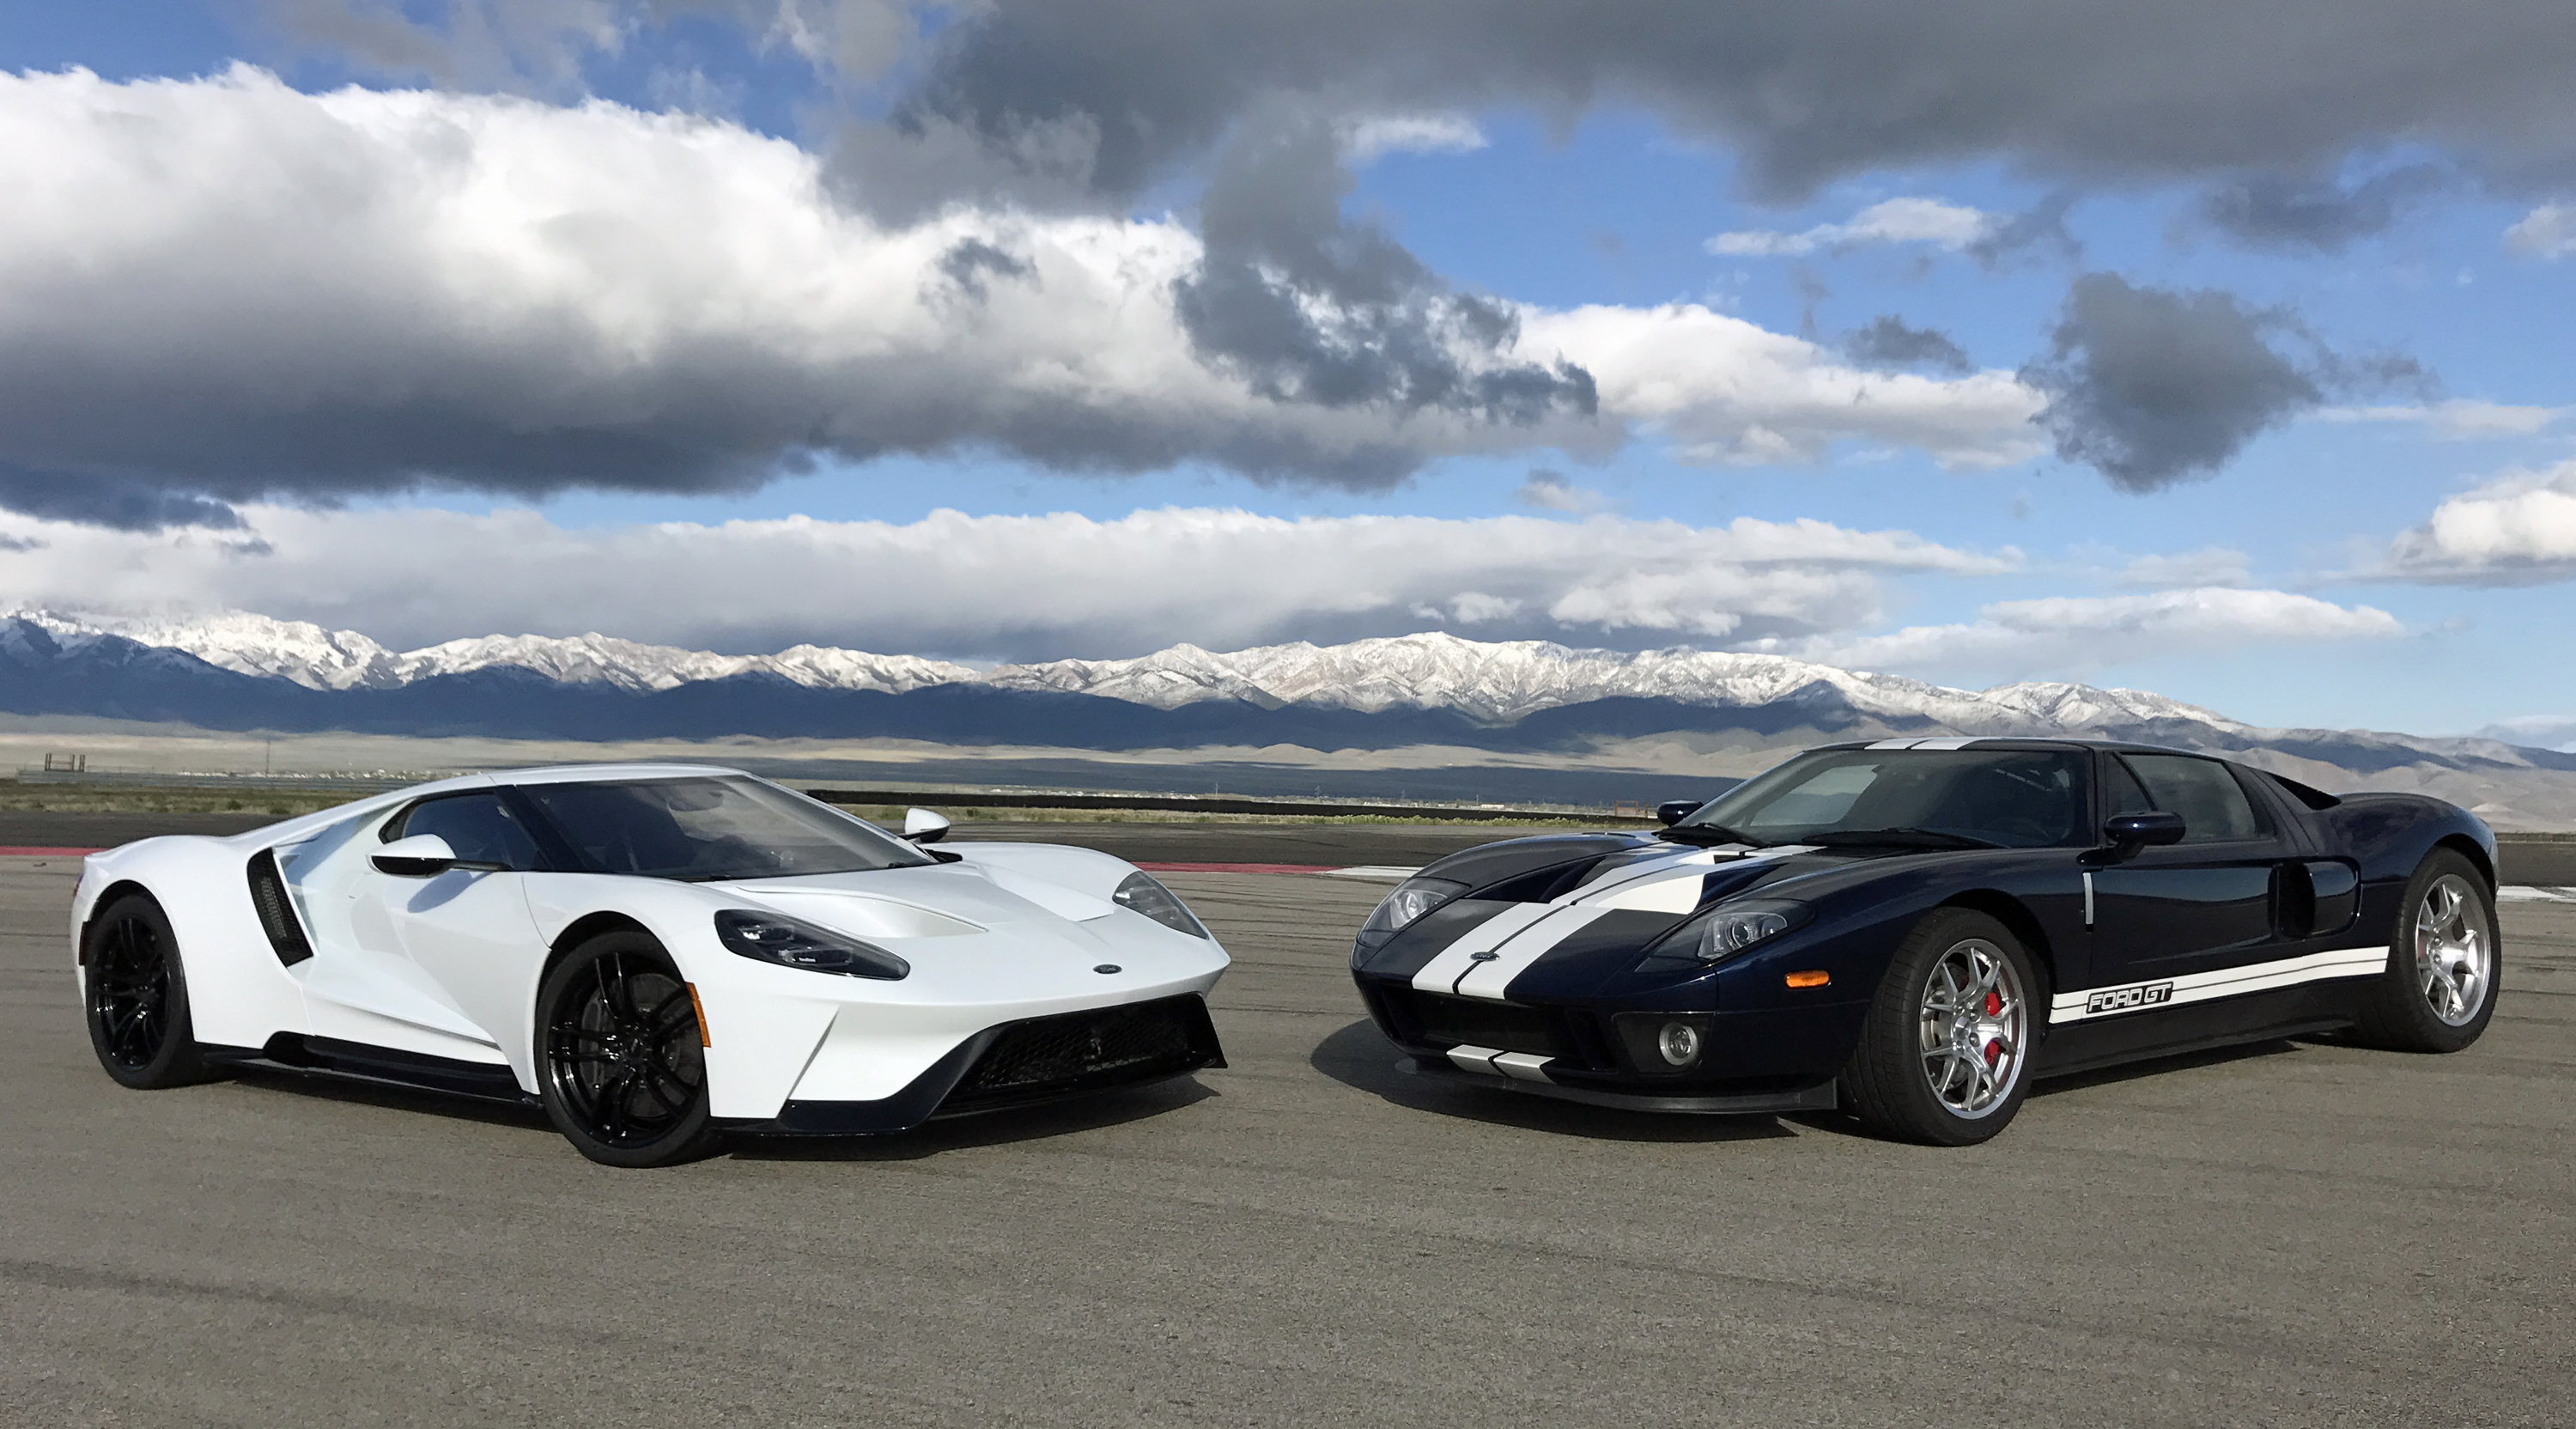 2005 Ford GT versus New Ford GT